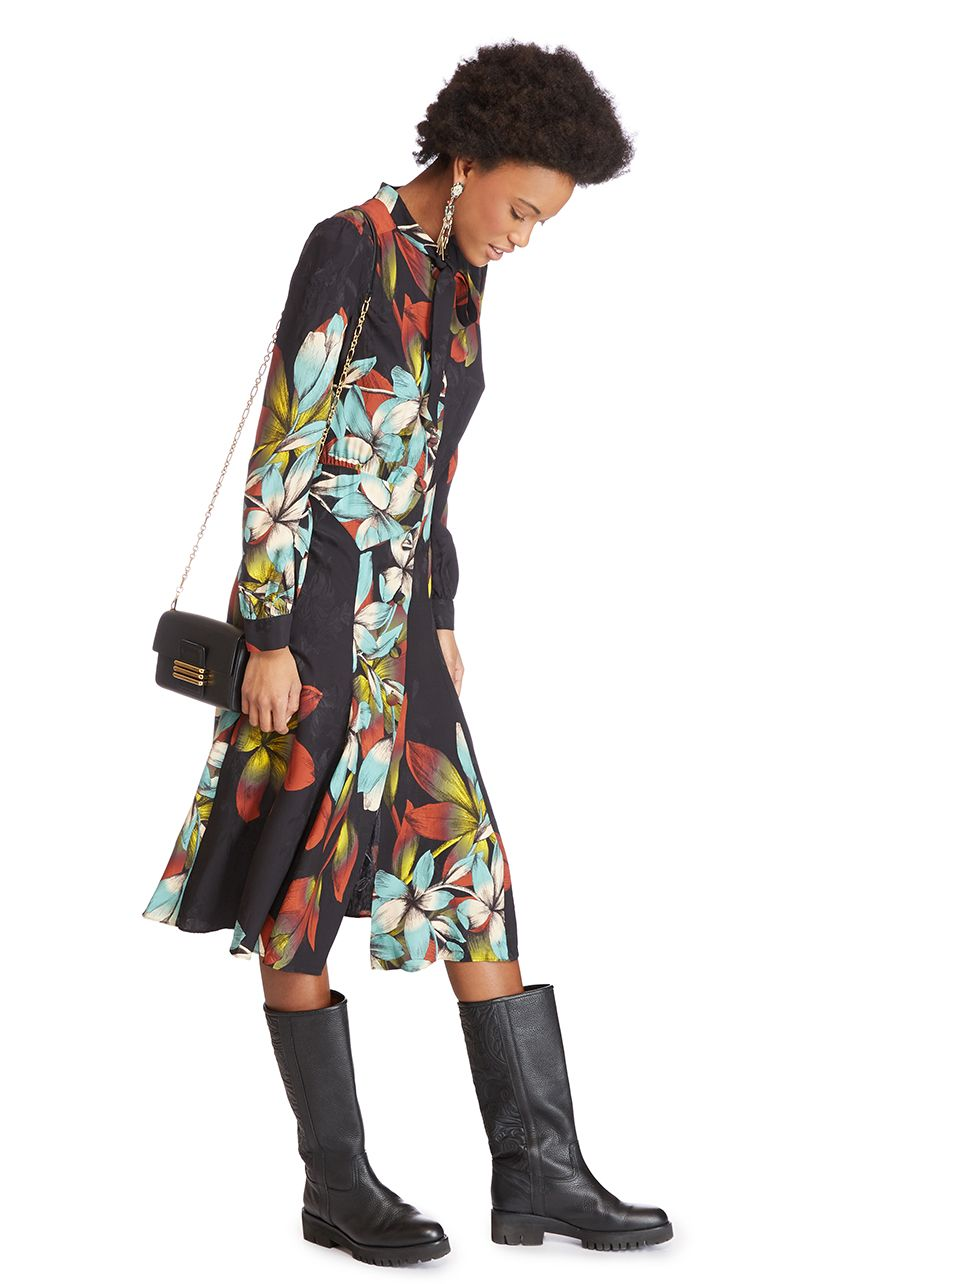 etro-new-collection-glamor